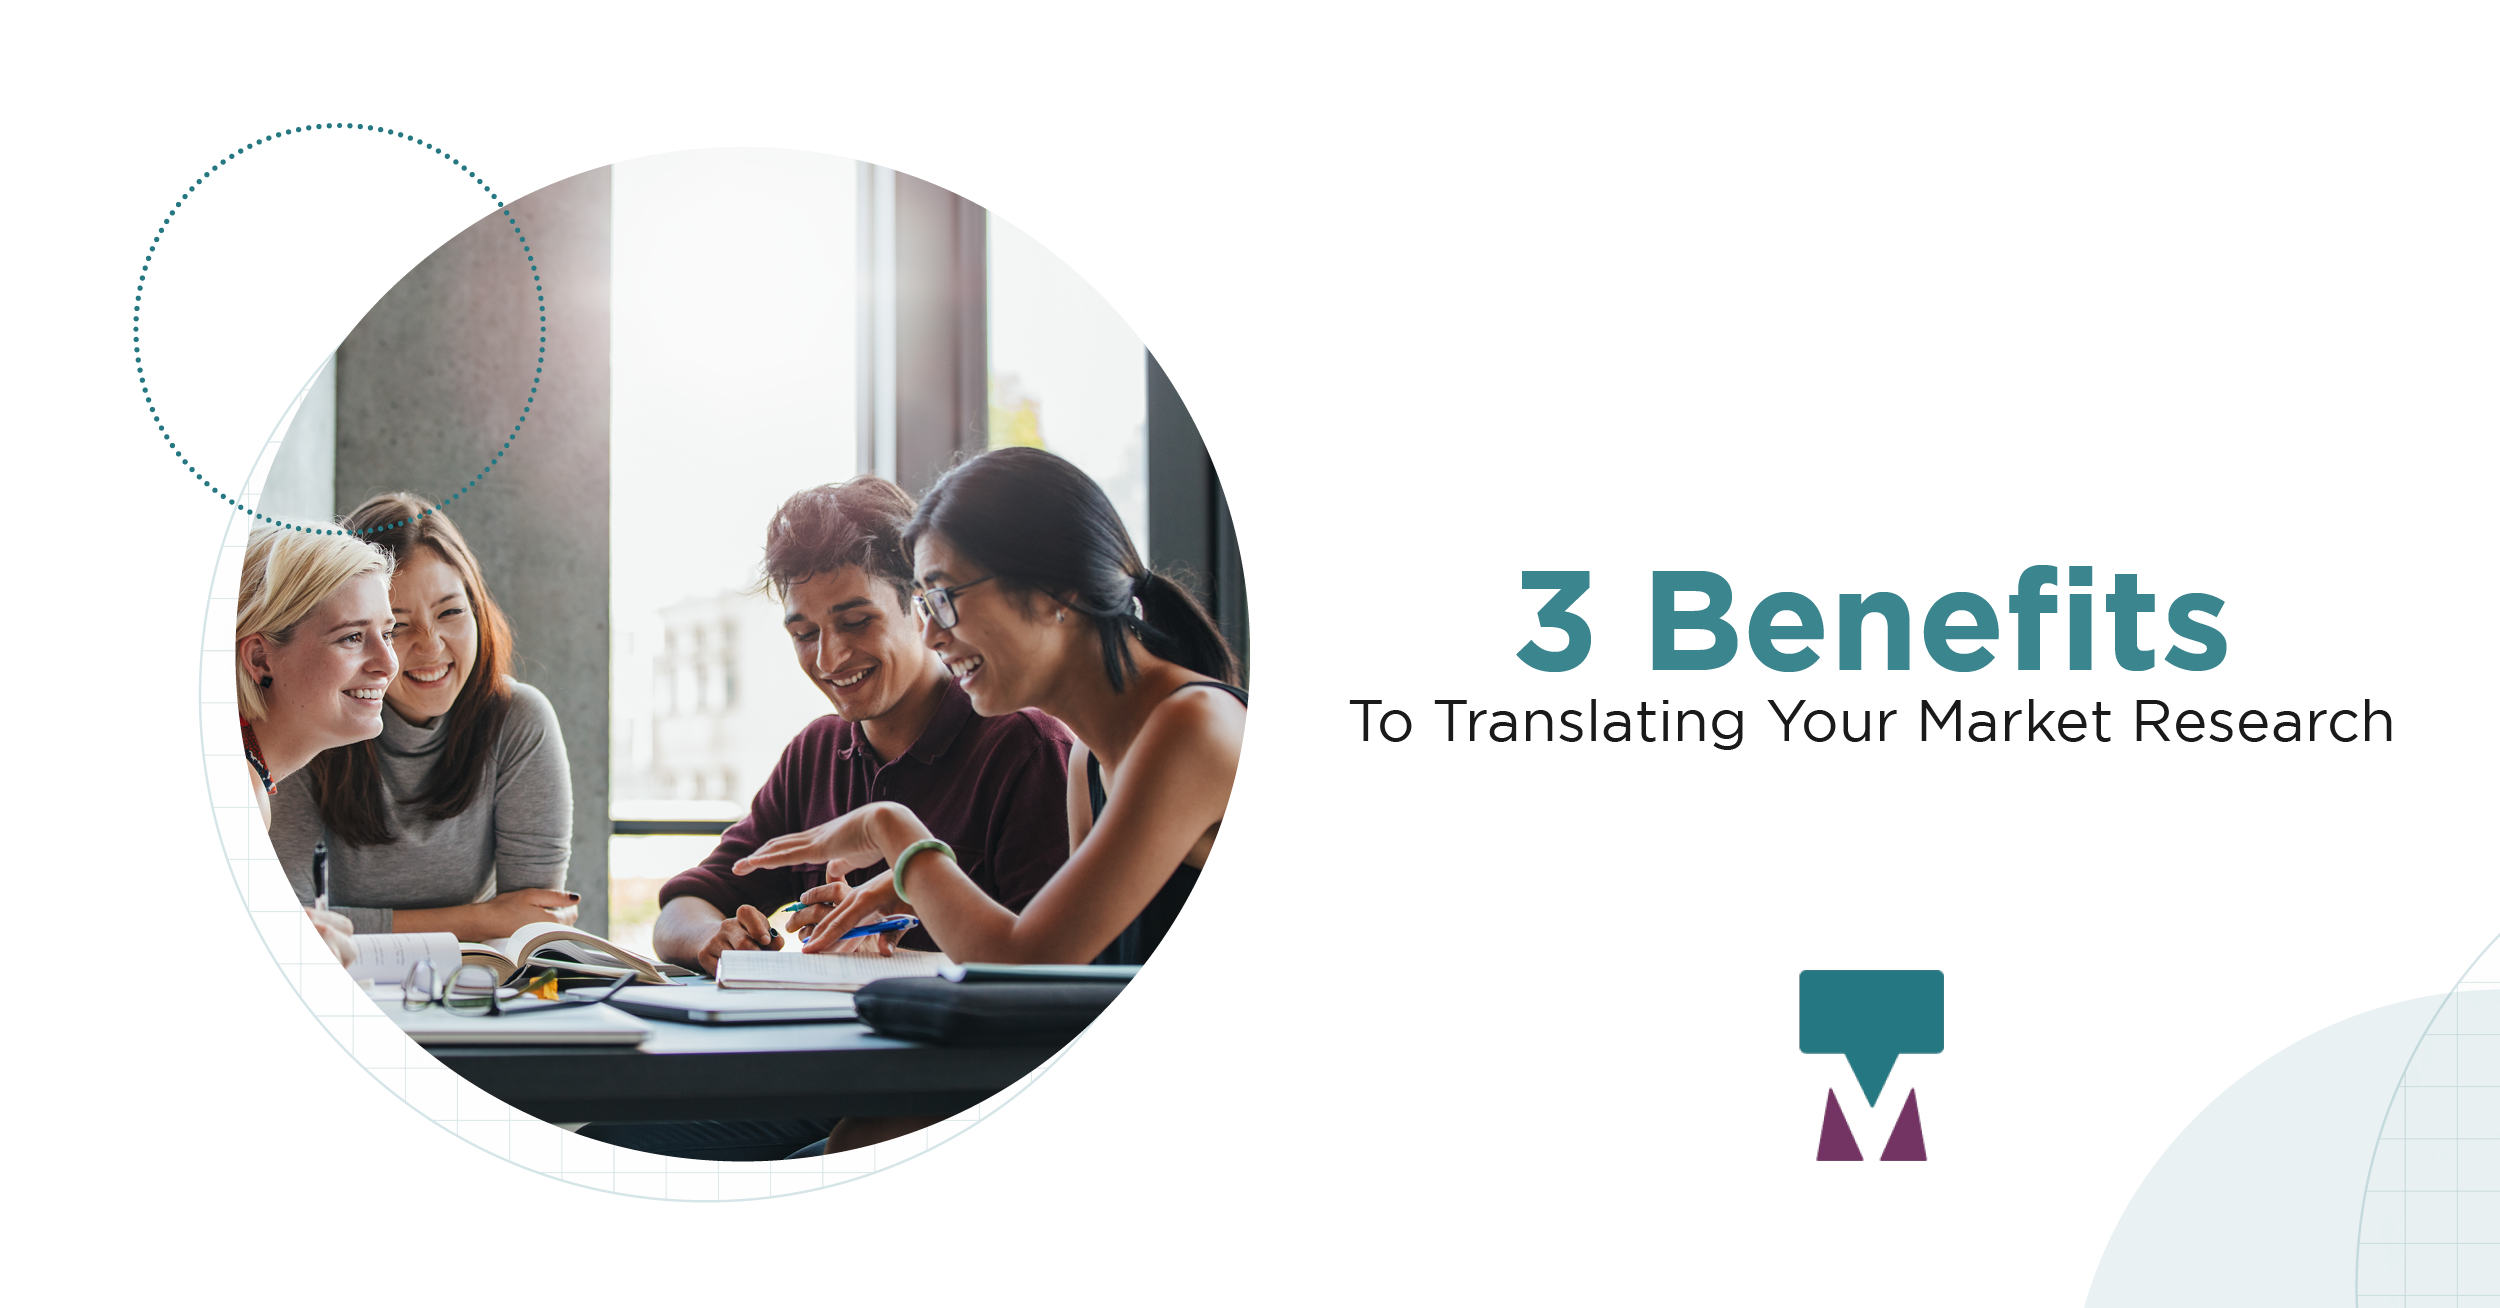 3 Benefits to Translating Your Market Research